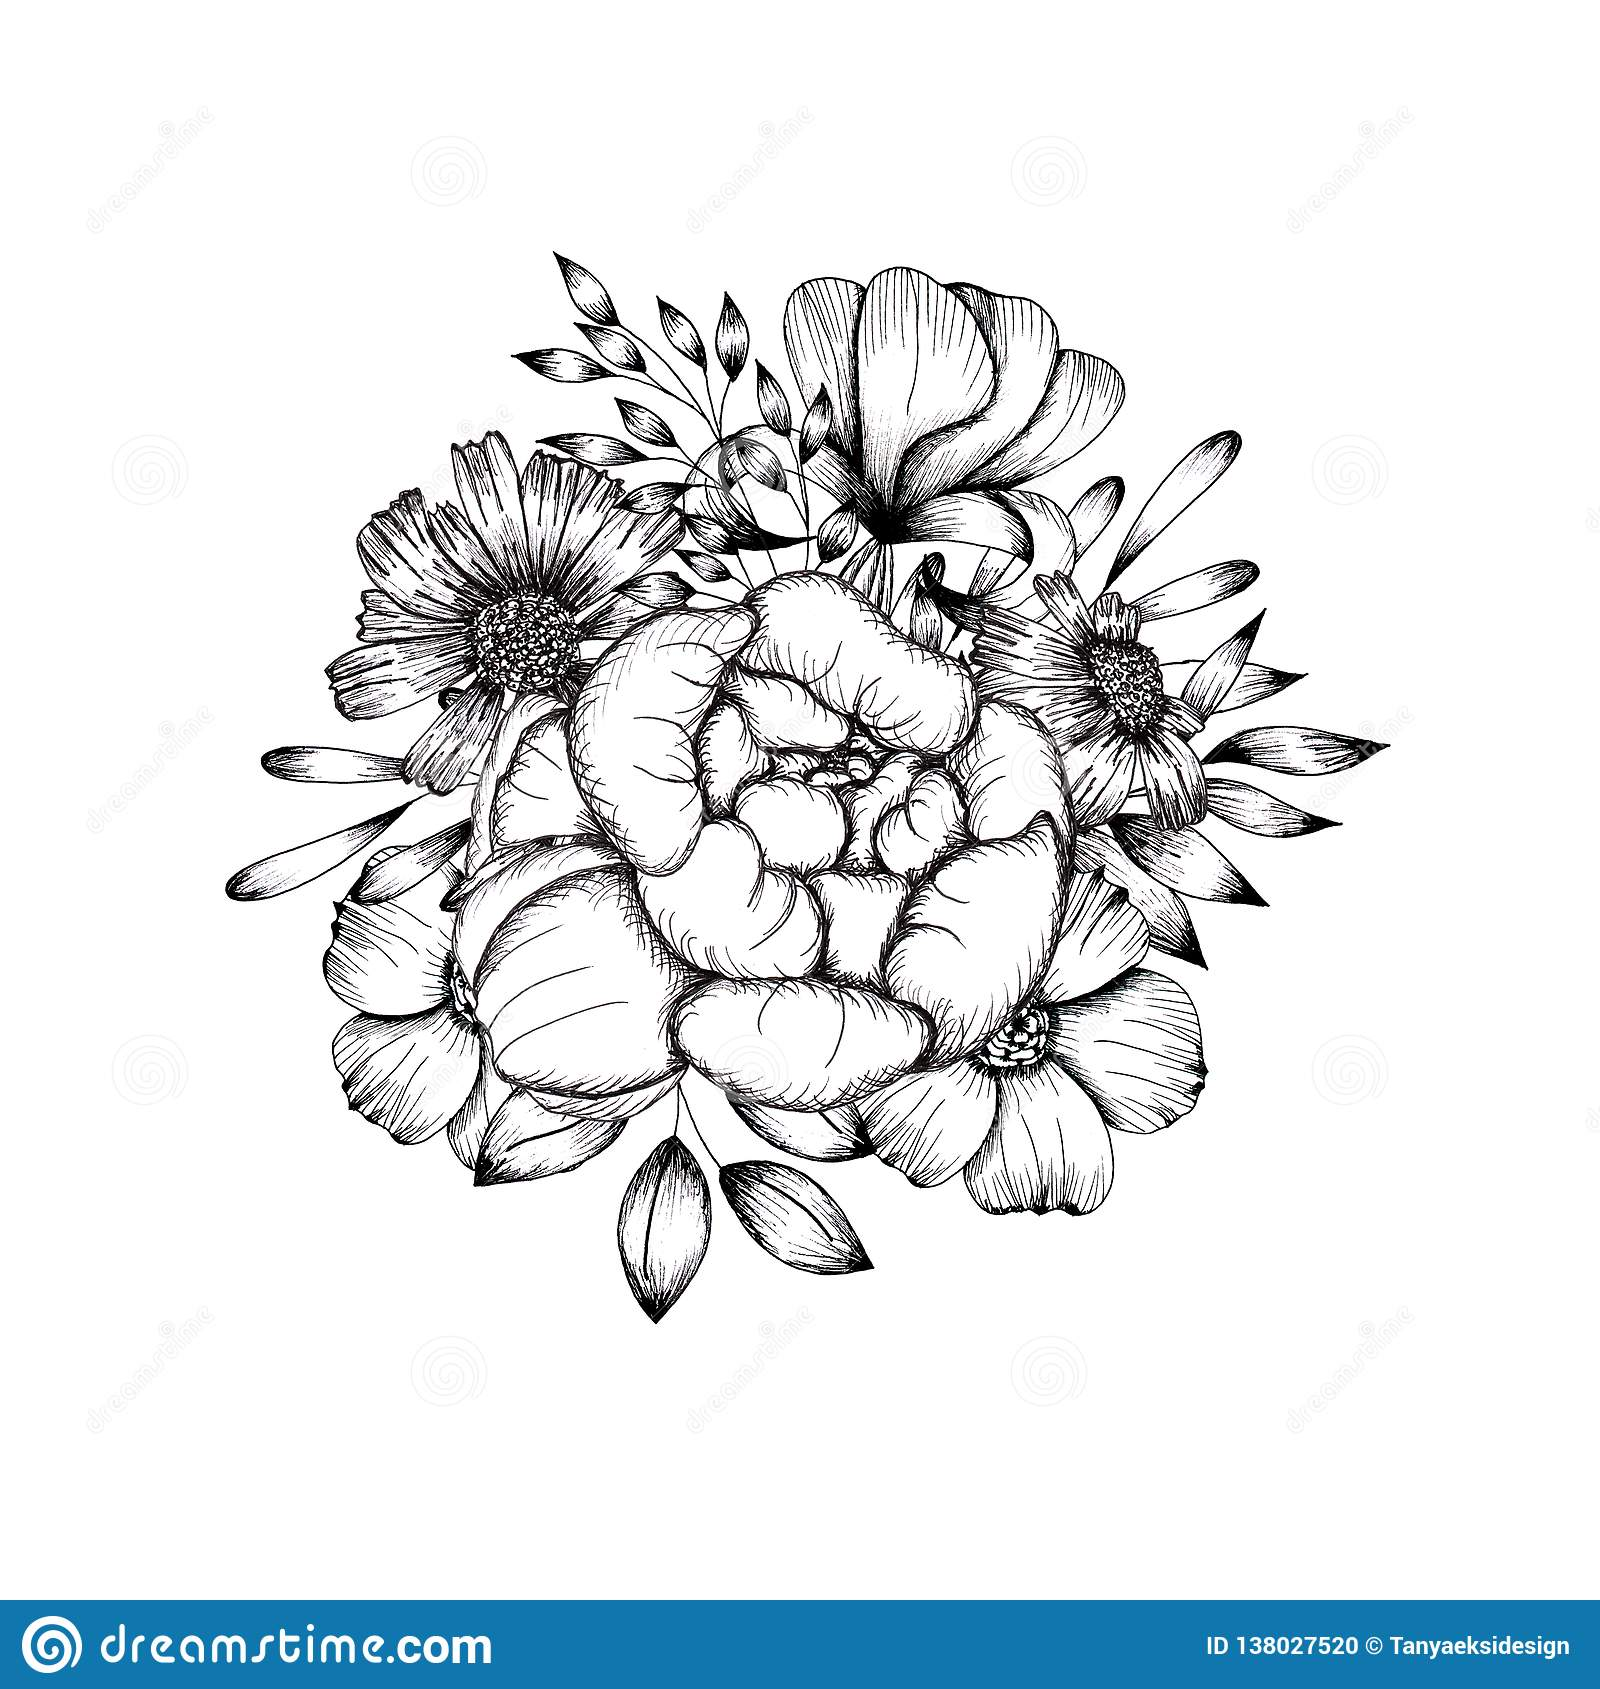 hand drawn black and white flower arrangement background for